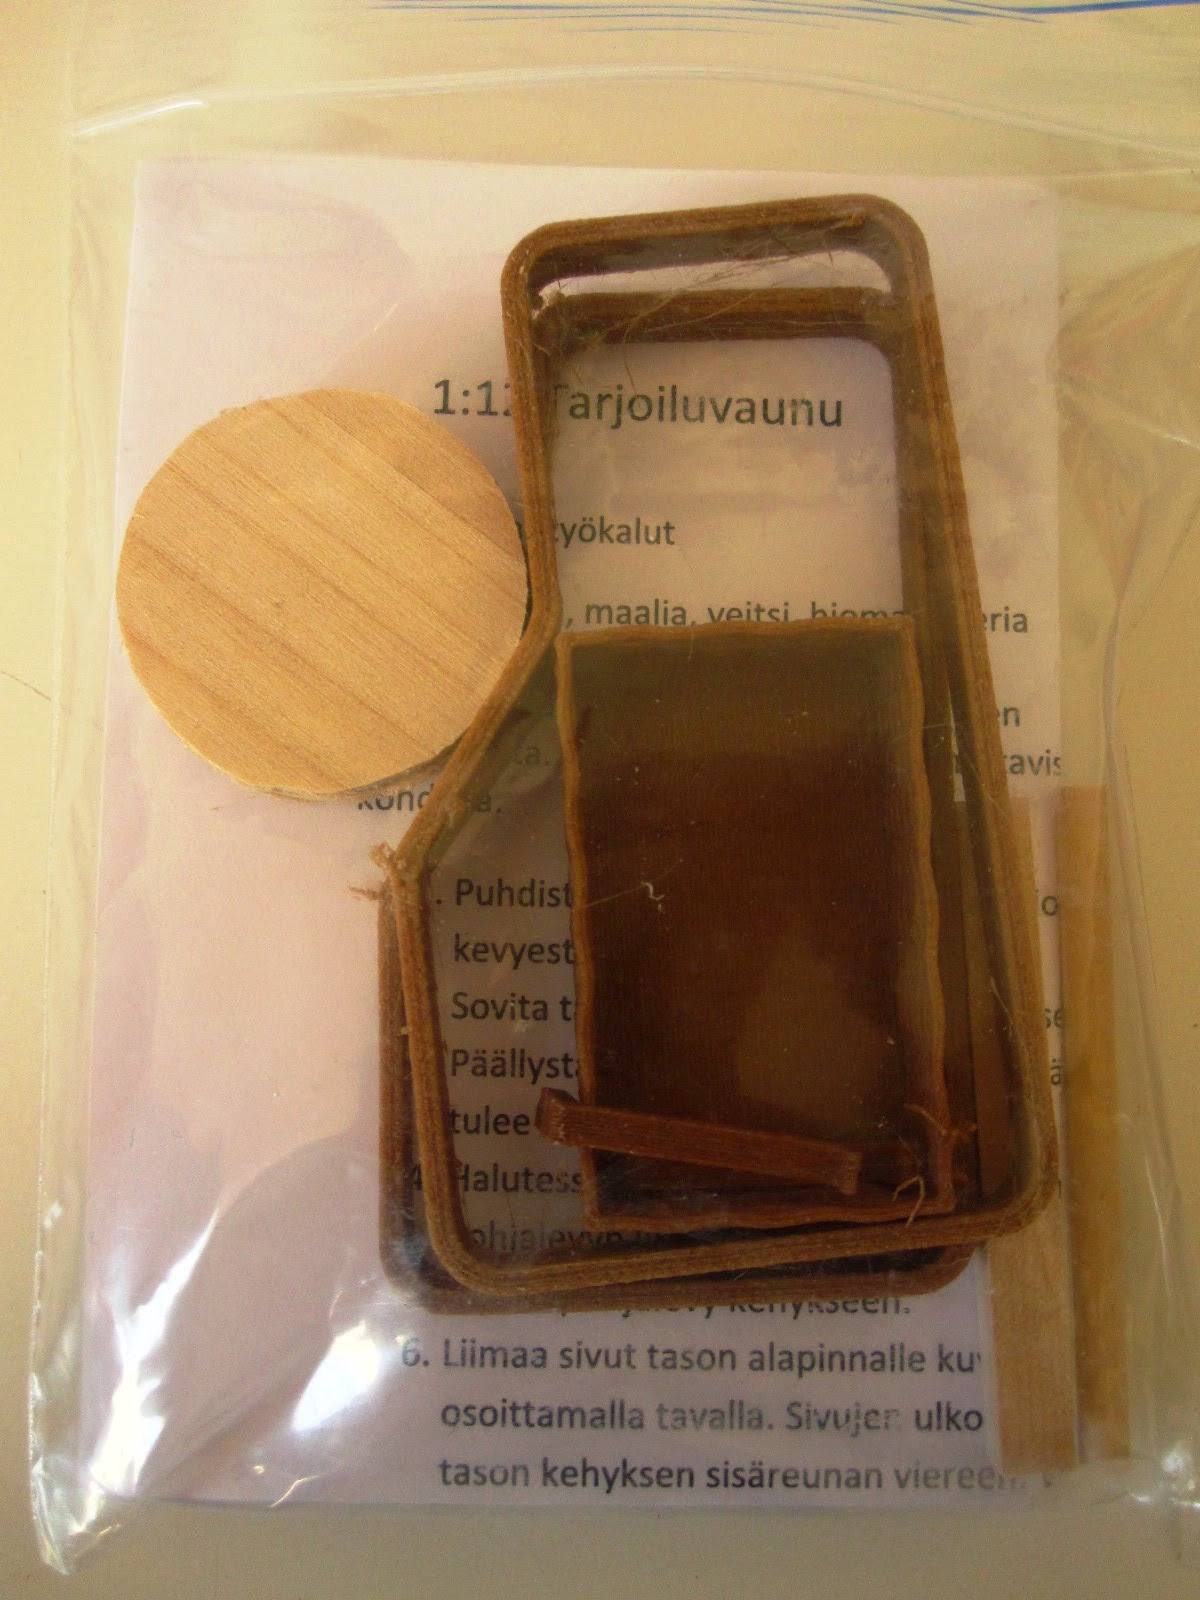 Small ziplock bag containing pieces of wood and a folded instruction sheet